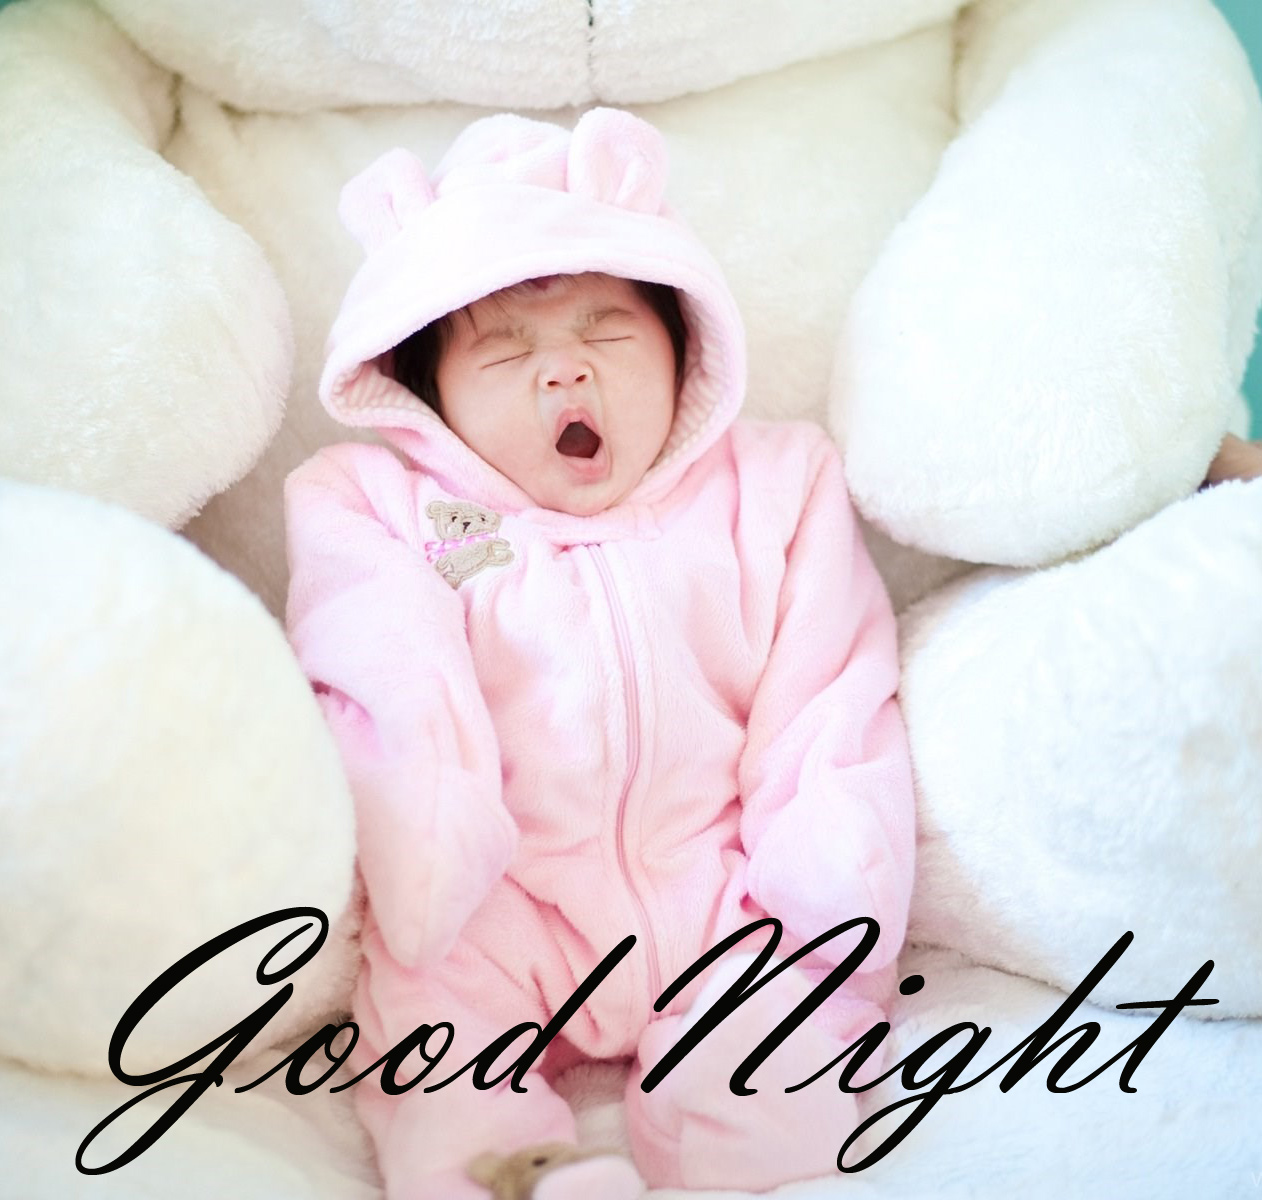 Cute Good Night Quotes wishes with Cute Babies Images